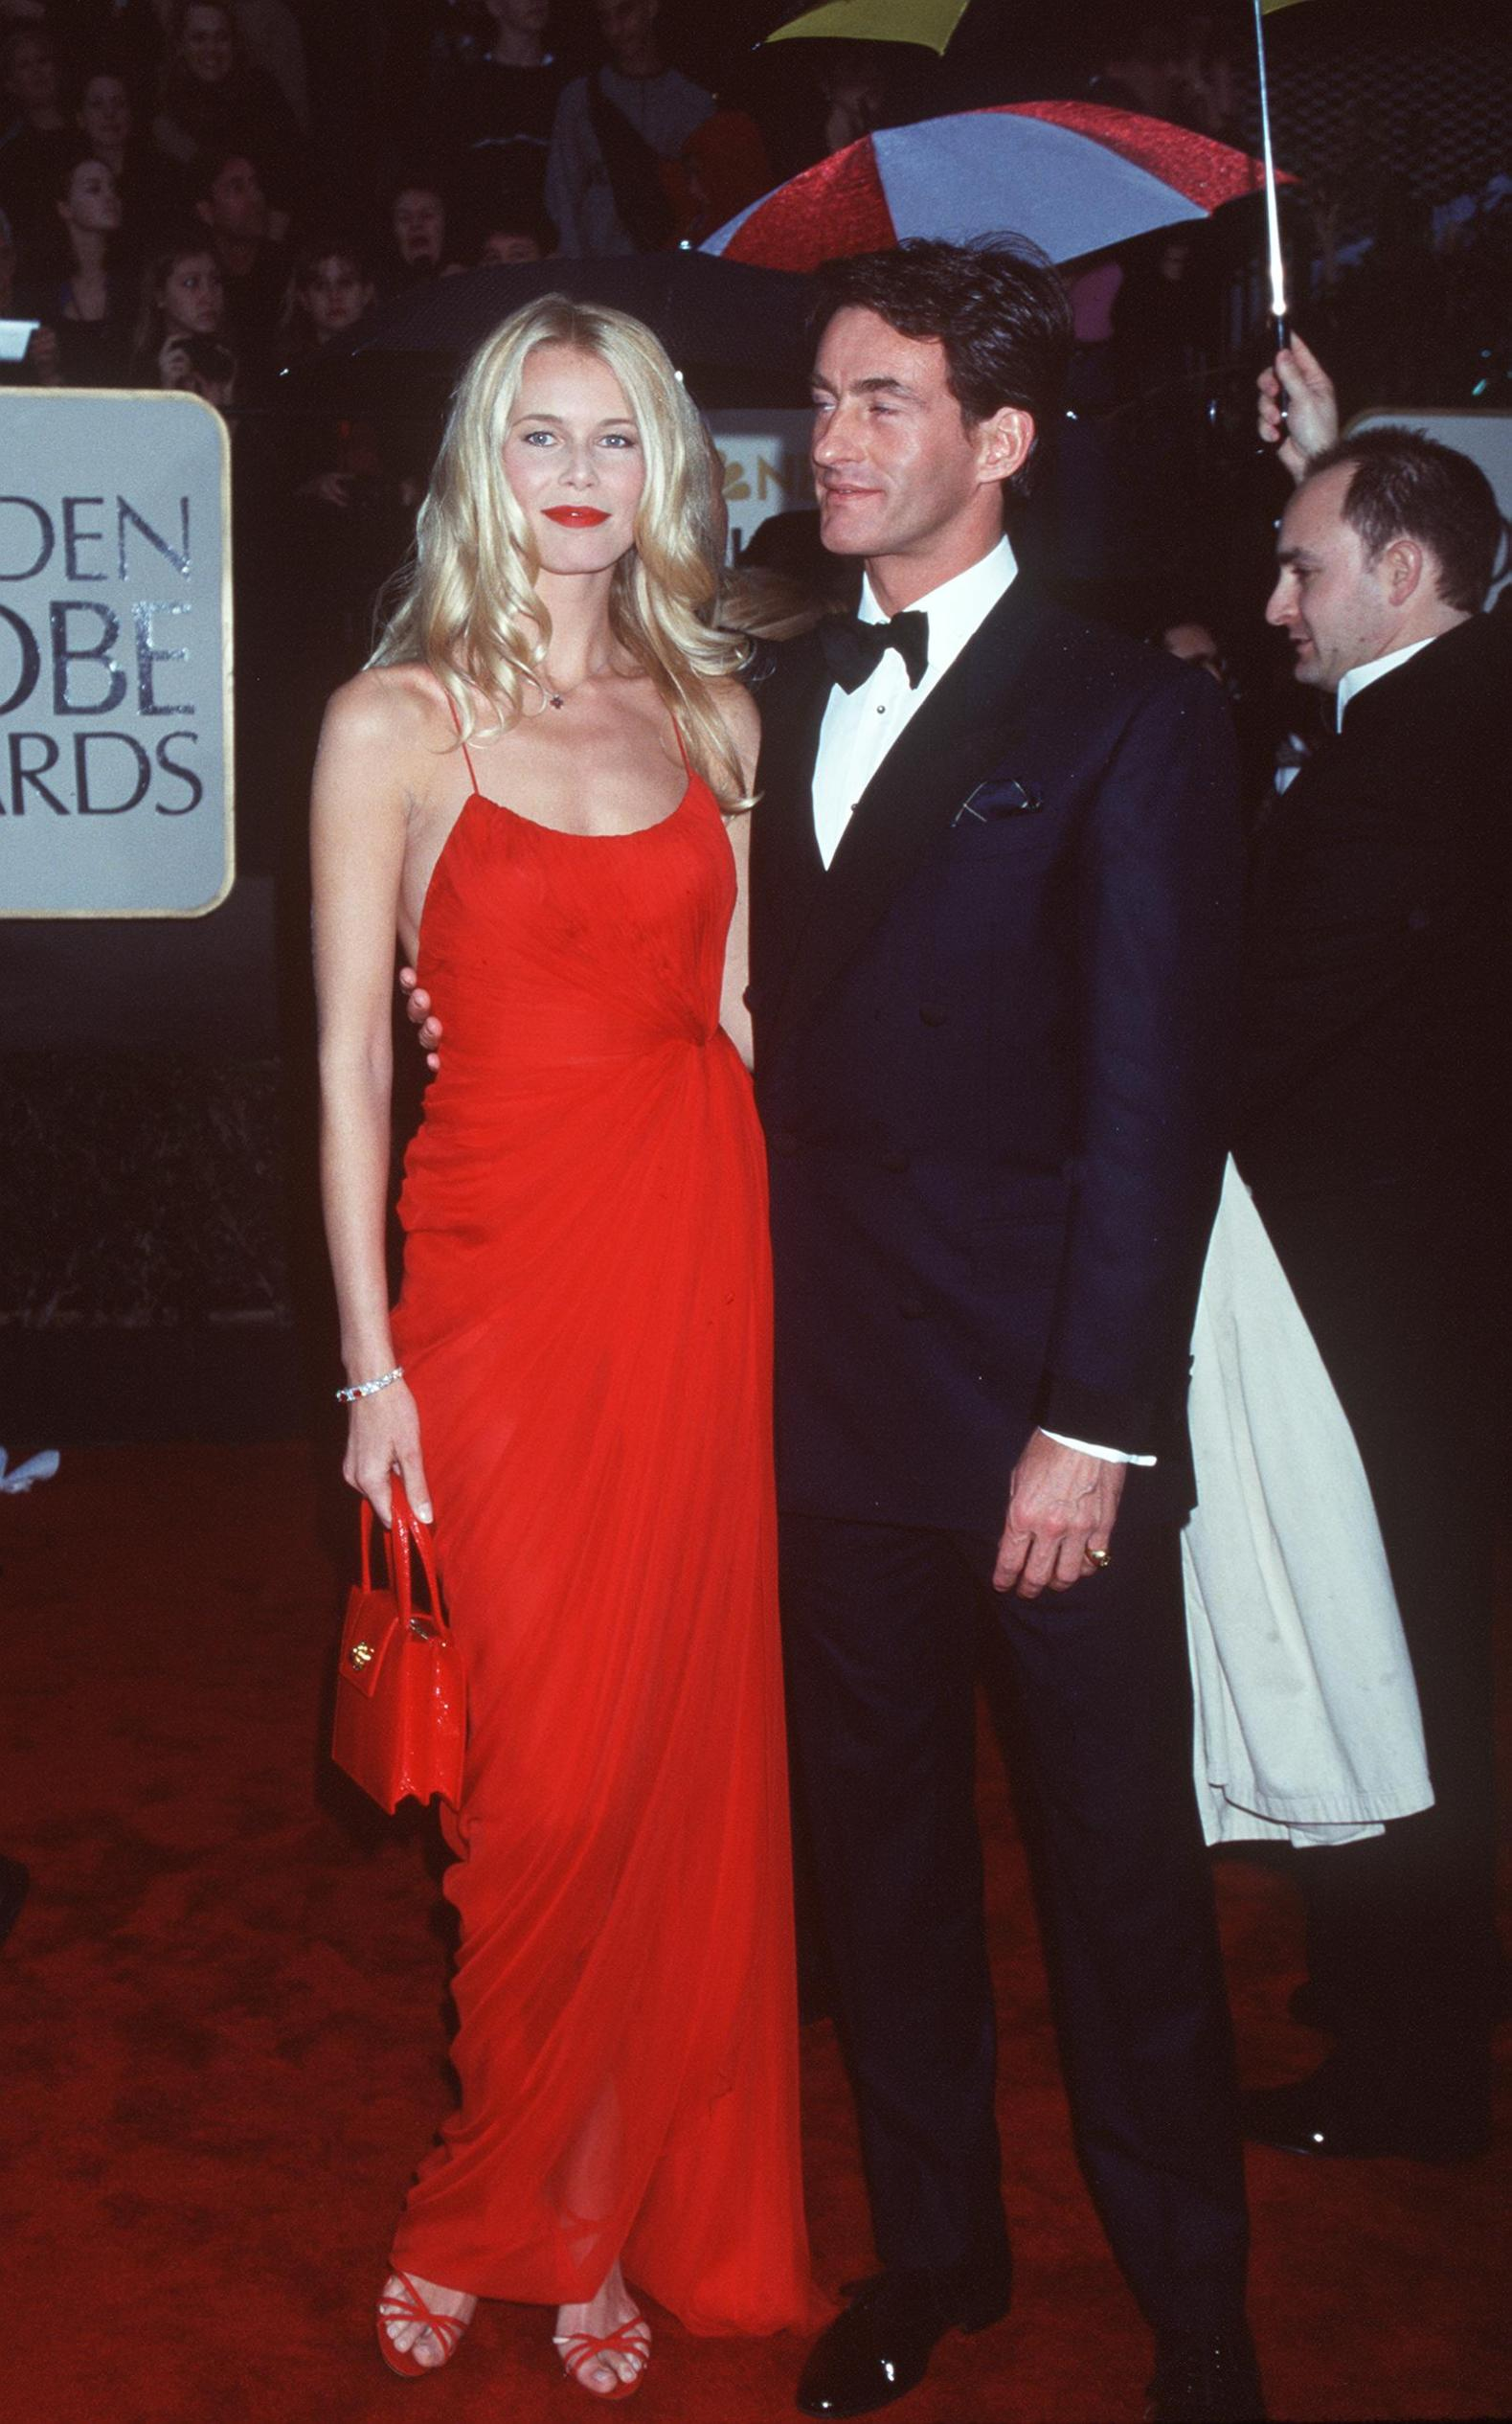 01/23/00 Los Angeles, CA Claudia Schiffer and boyfriend at the Golden Globe Awards. Photo Brenda Chase Online USA, Inc.